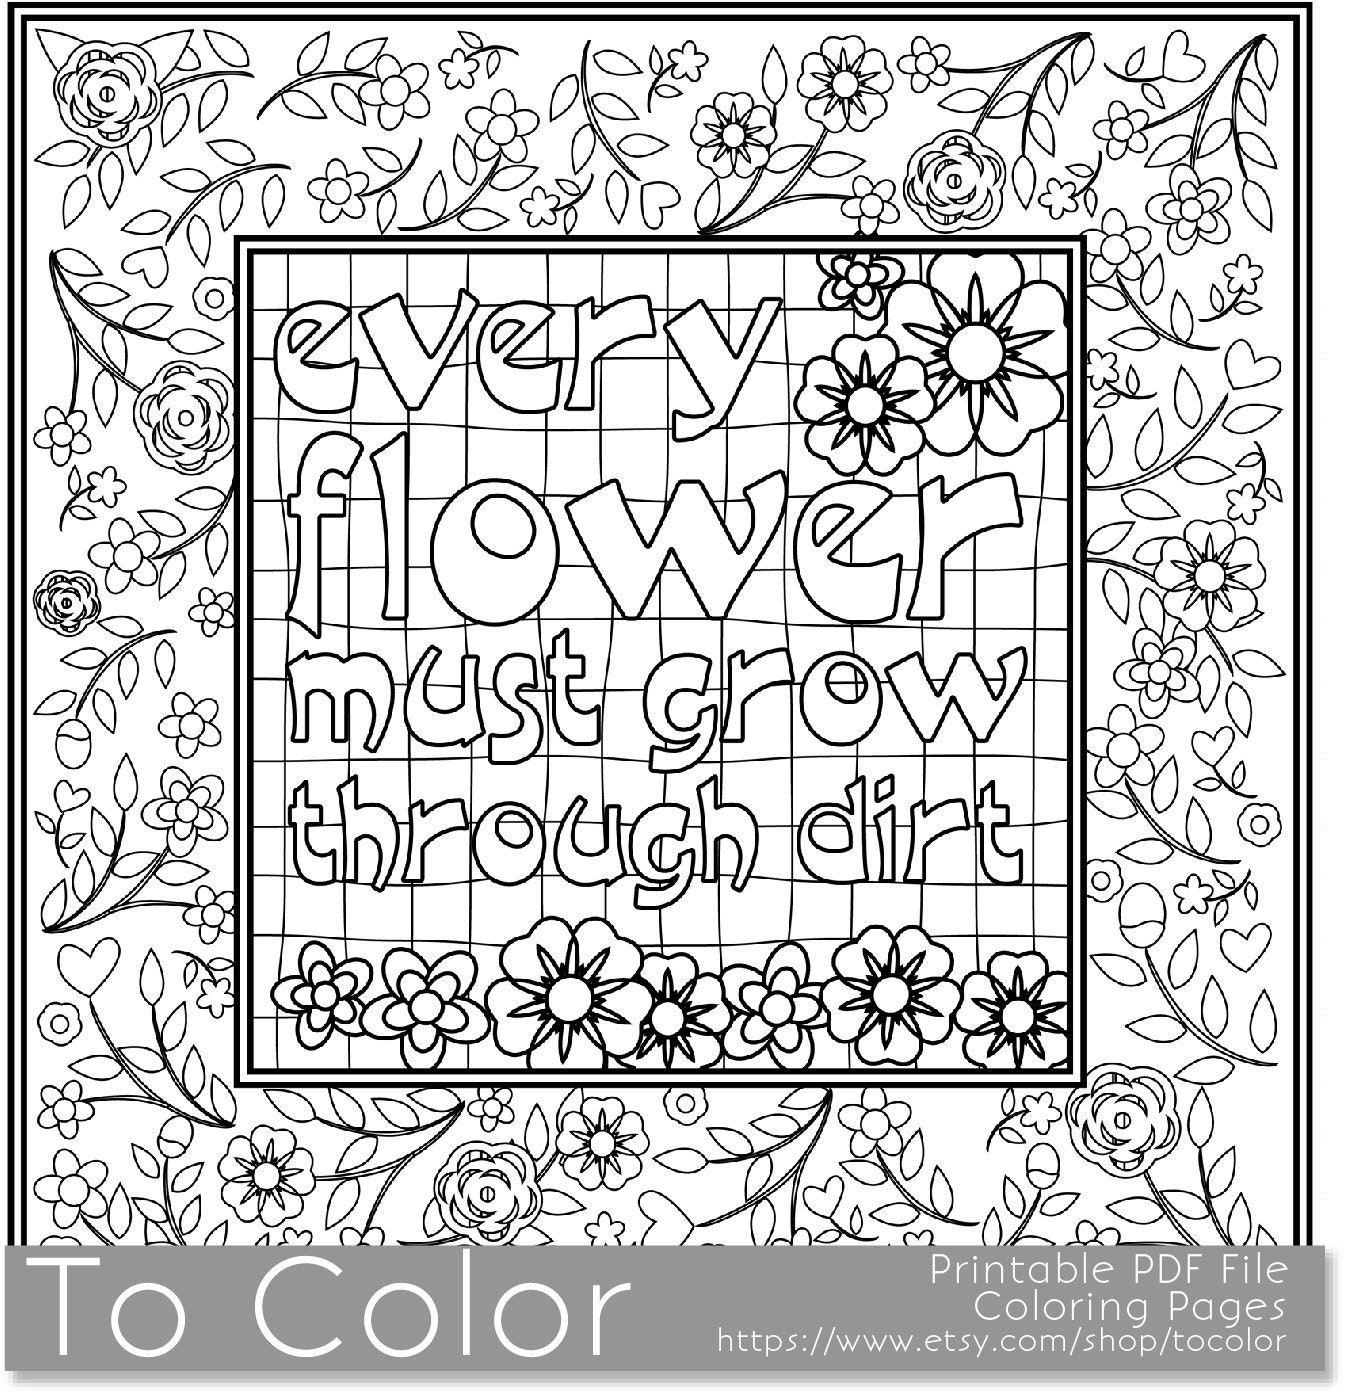 Printable Motivational Coloring Page for Adults PDF / JPG